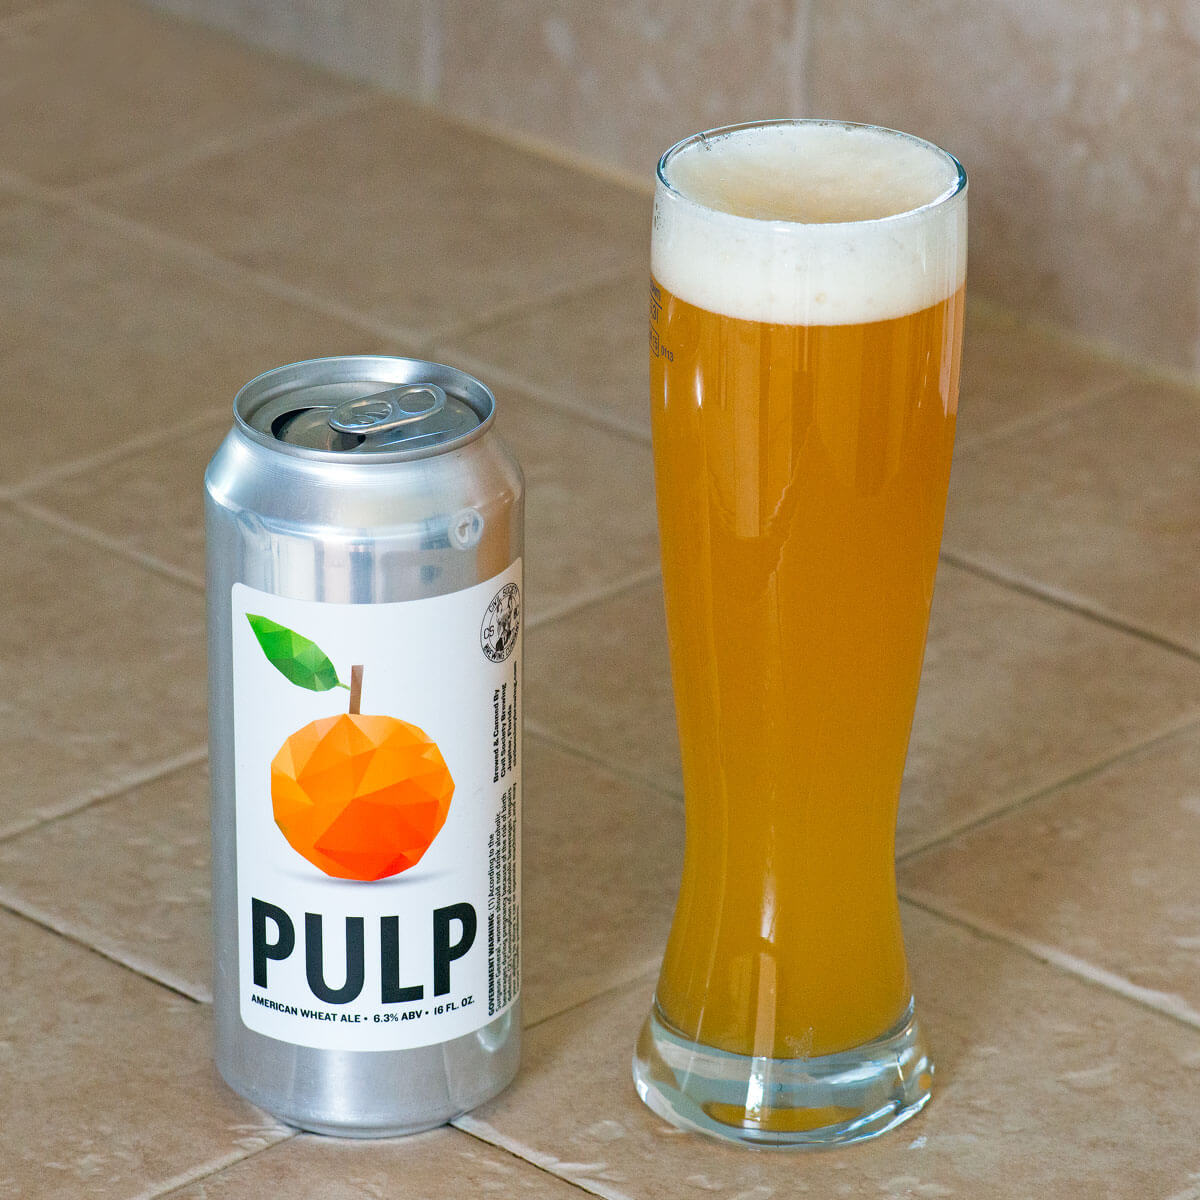 Pulp, an American Wheat Ale by Civil Society Brewing Co.